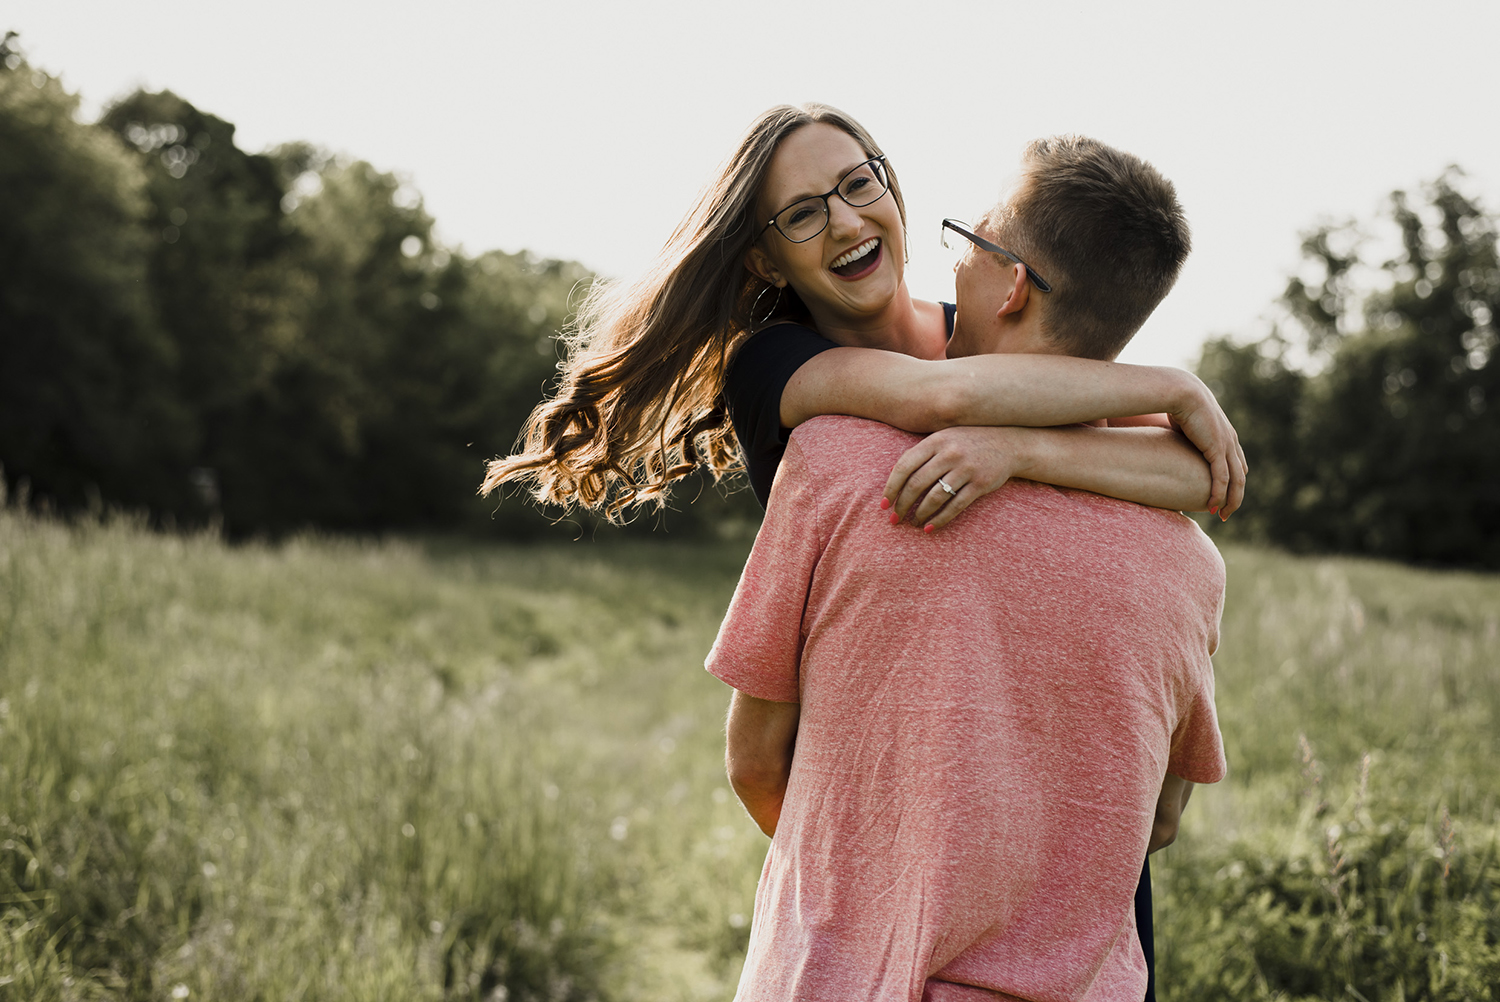 Mara & Corbin - SO happy with our decision in choosing Olivia Katherine Photography!! She has made us feel so comfortable and we actually had FUN taking pictures which neither of us would've imagined!